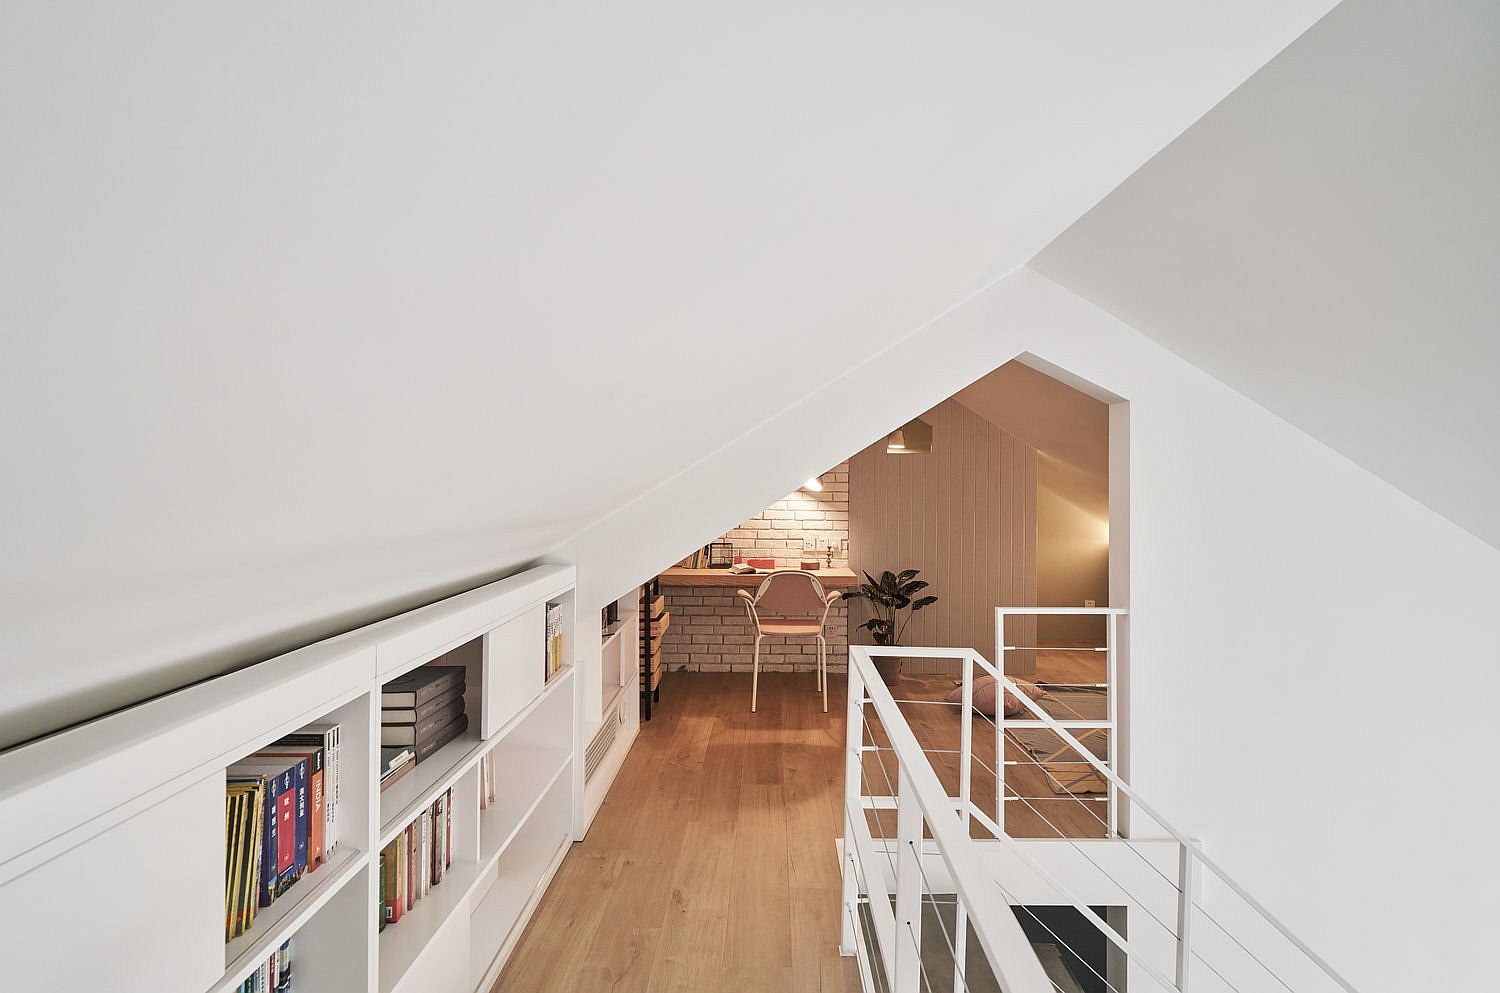 Slanted-ceiling-allows-the-architects-to-experiment-with-the-mezzanine-level-design